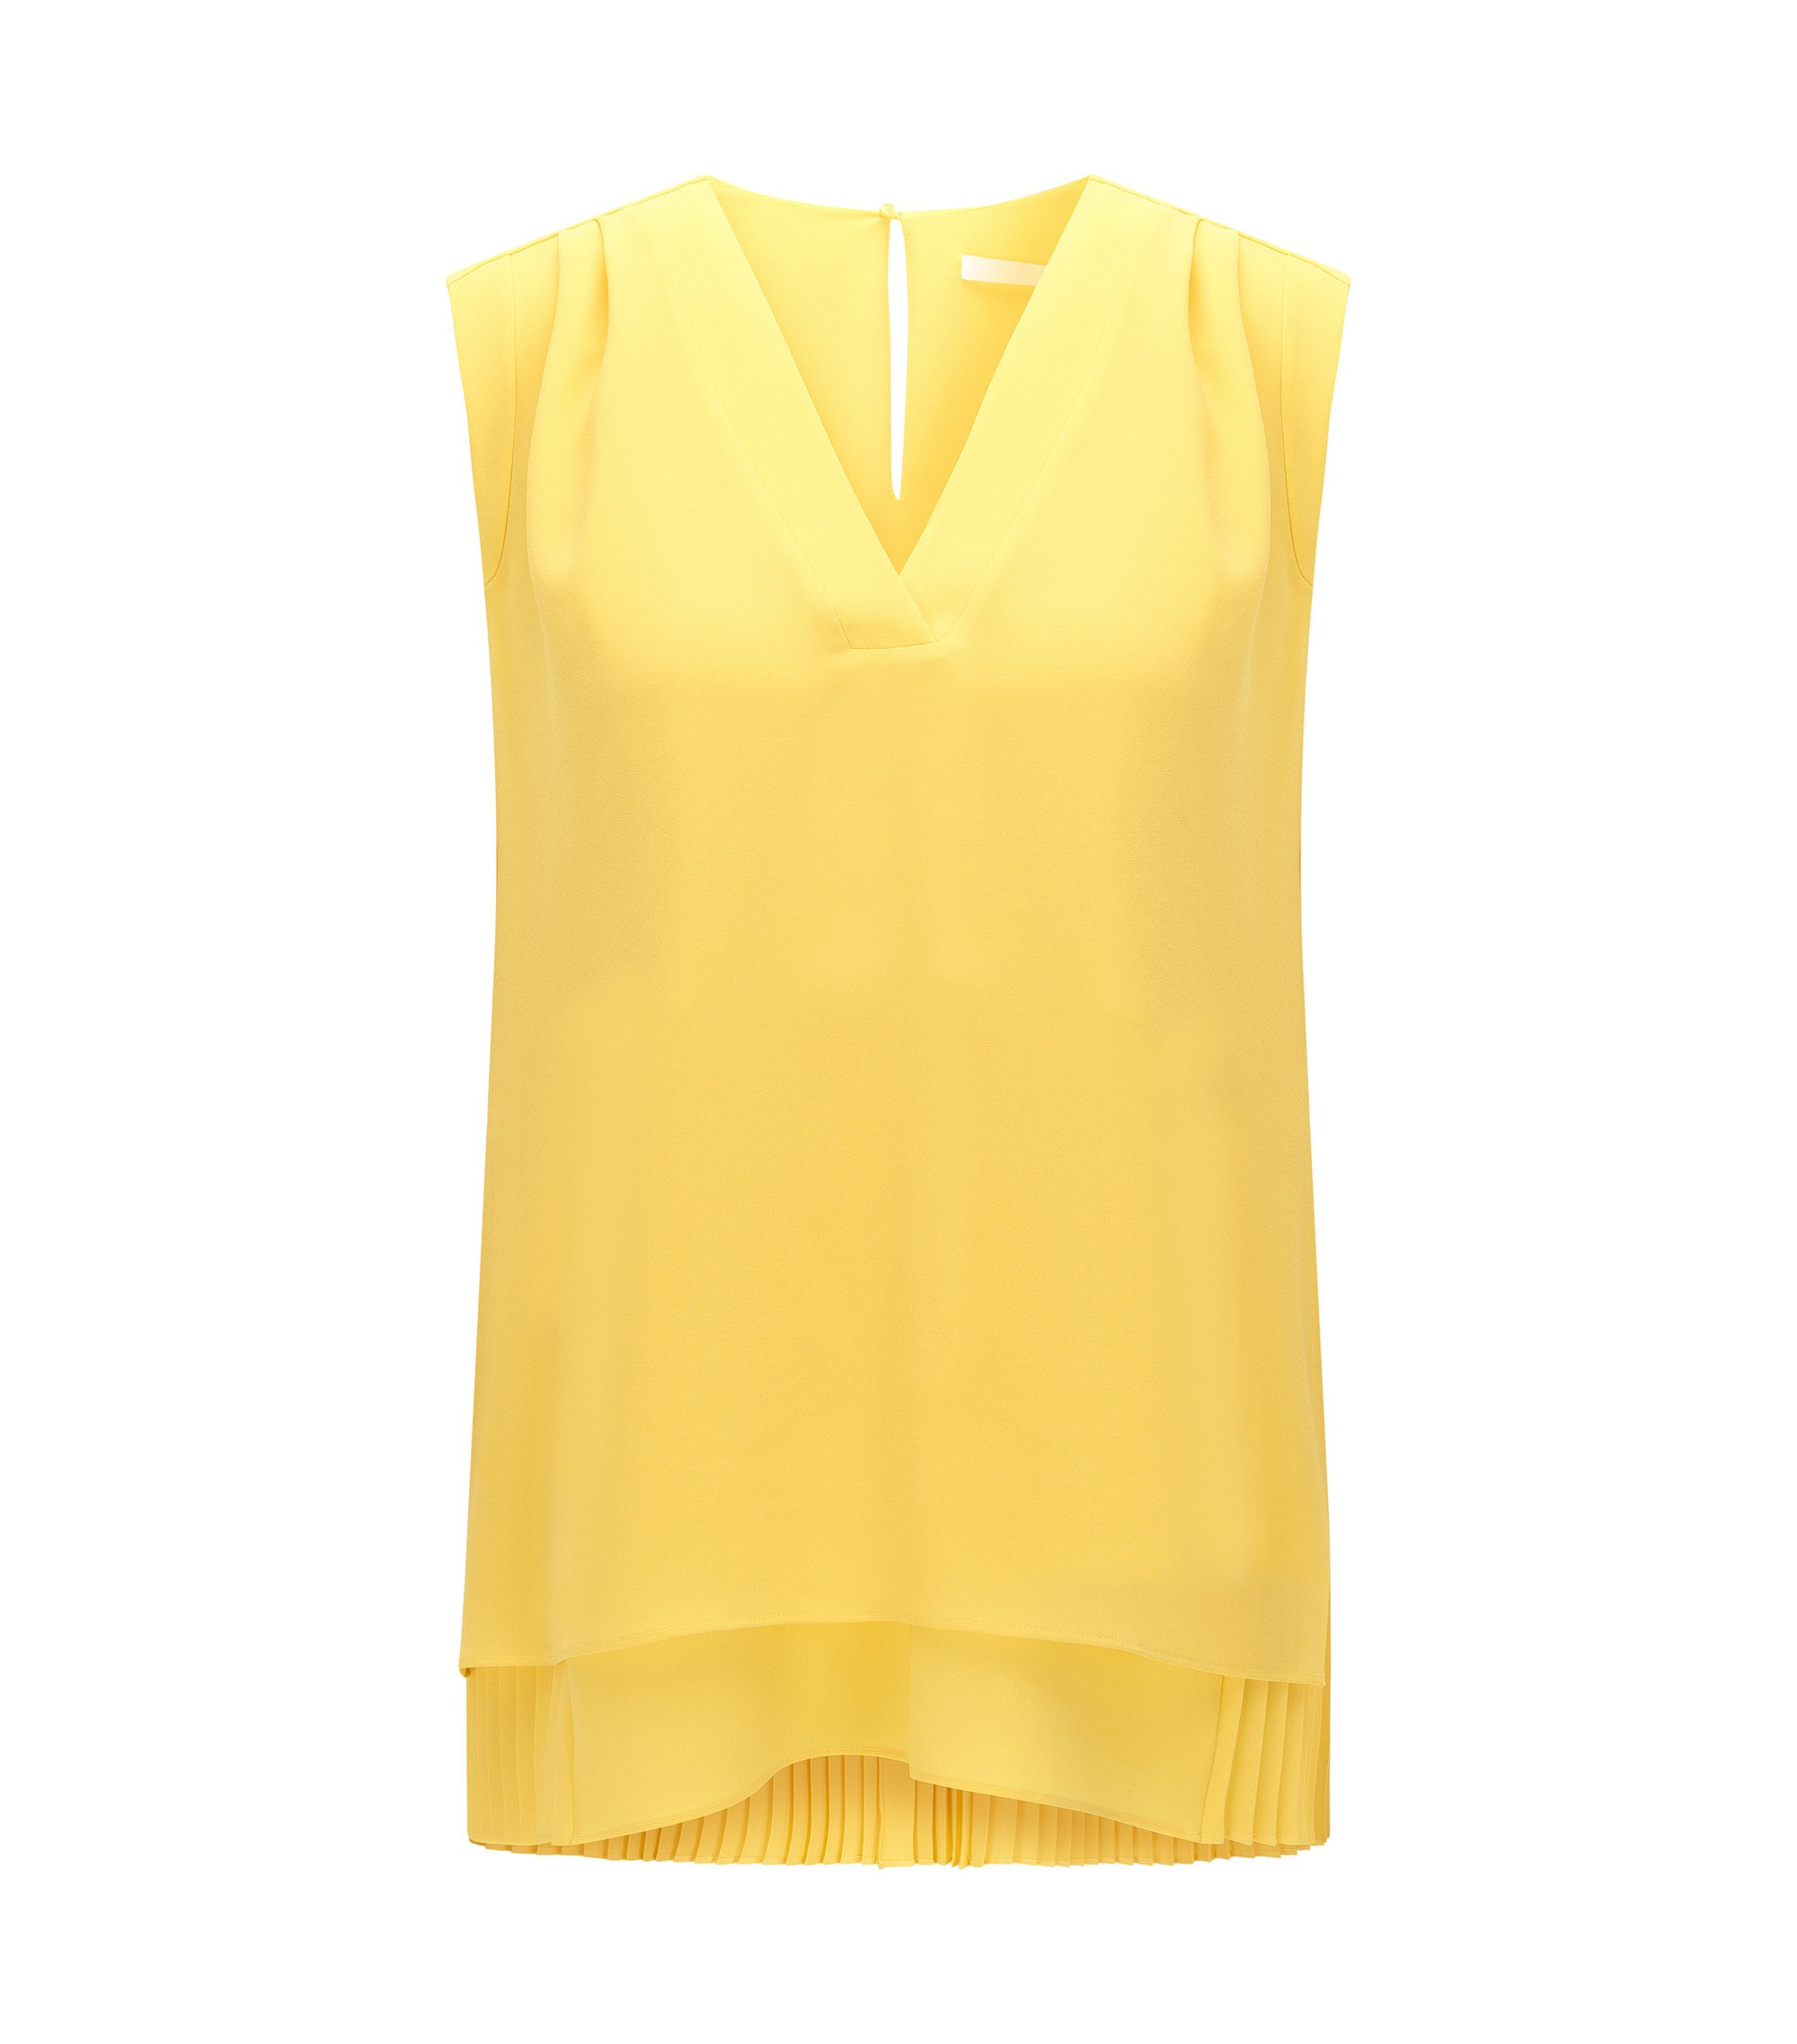 Top sans manches Regular Fit à doublure plissée, Jaune